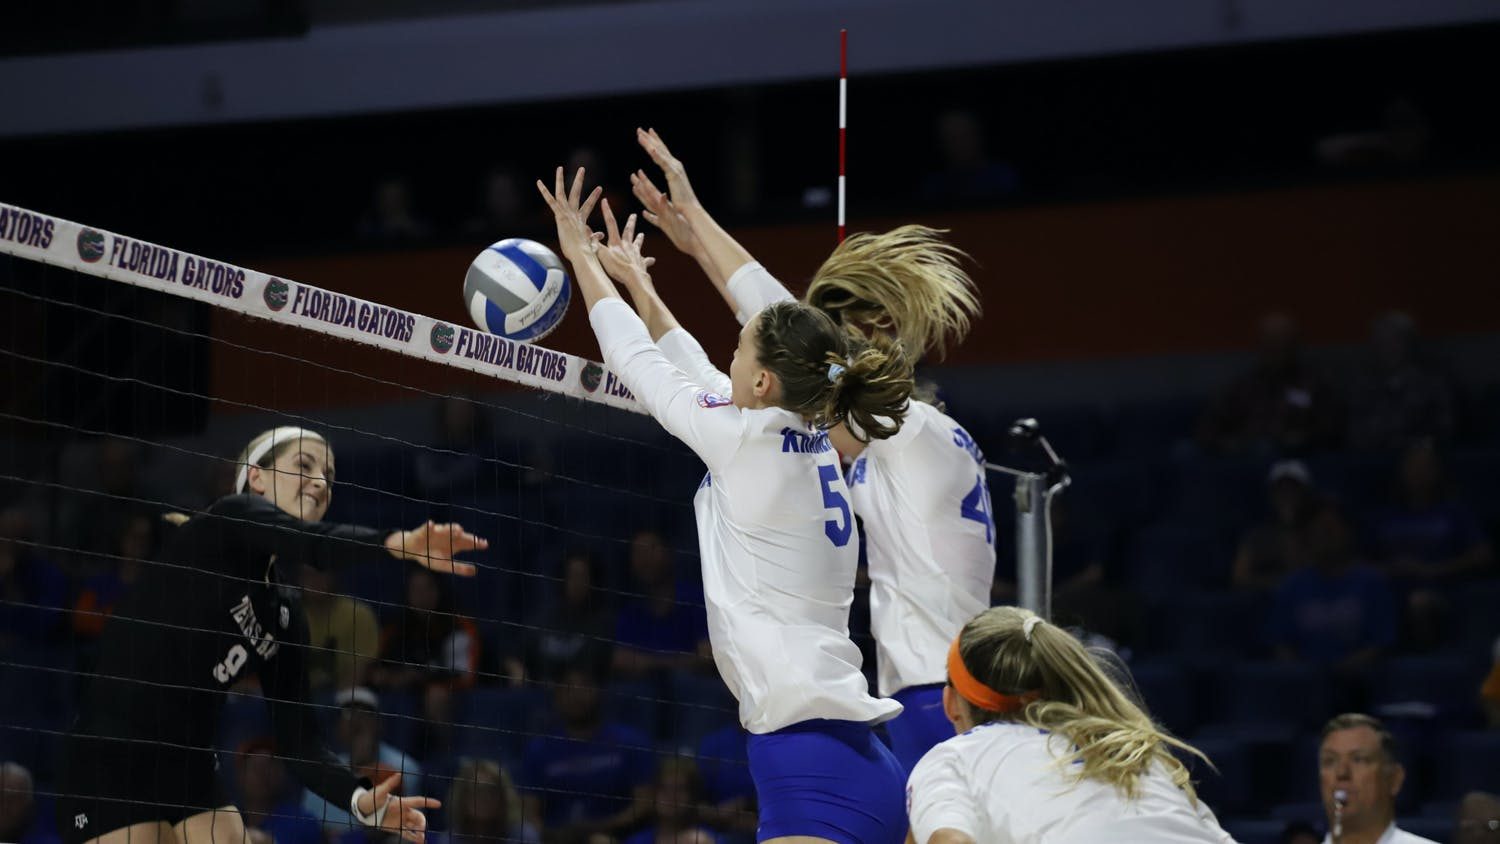 Florida's Rachel Kramer and Holly Carlton go for a block in a 2019 game against Texas A&M.